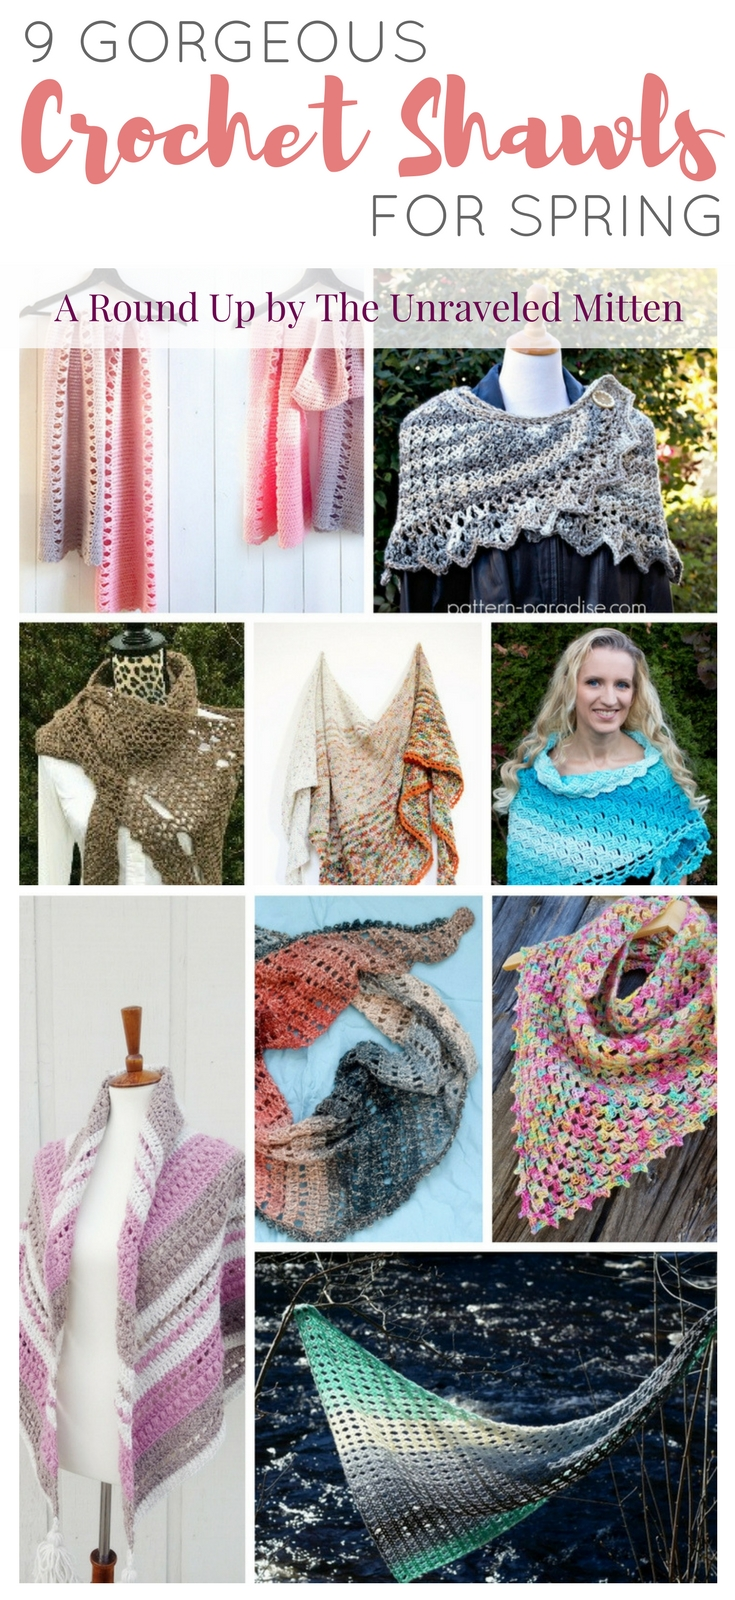 9 Gorgeous Crochet Shawls for Spring   A crochet pattern round up compiled by The Unraveled Mitten